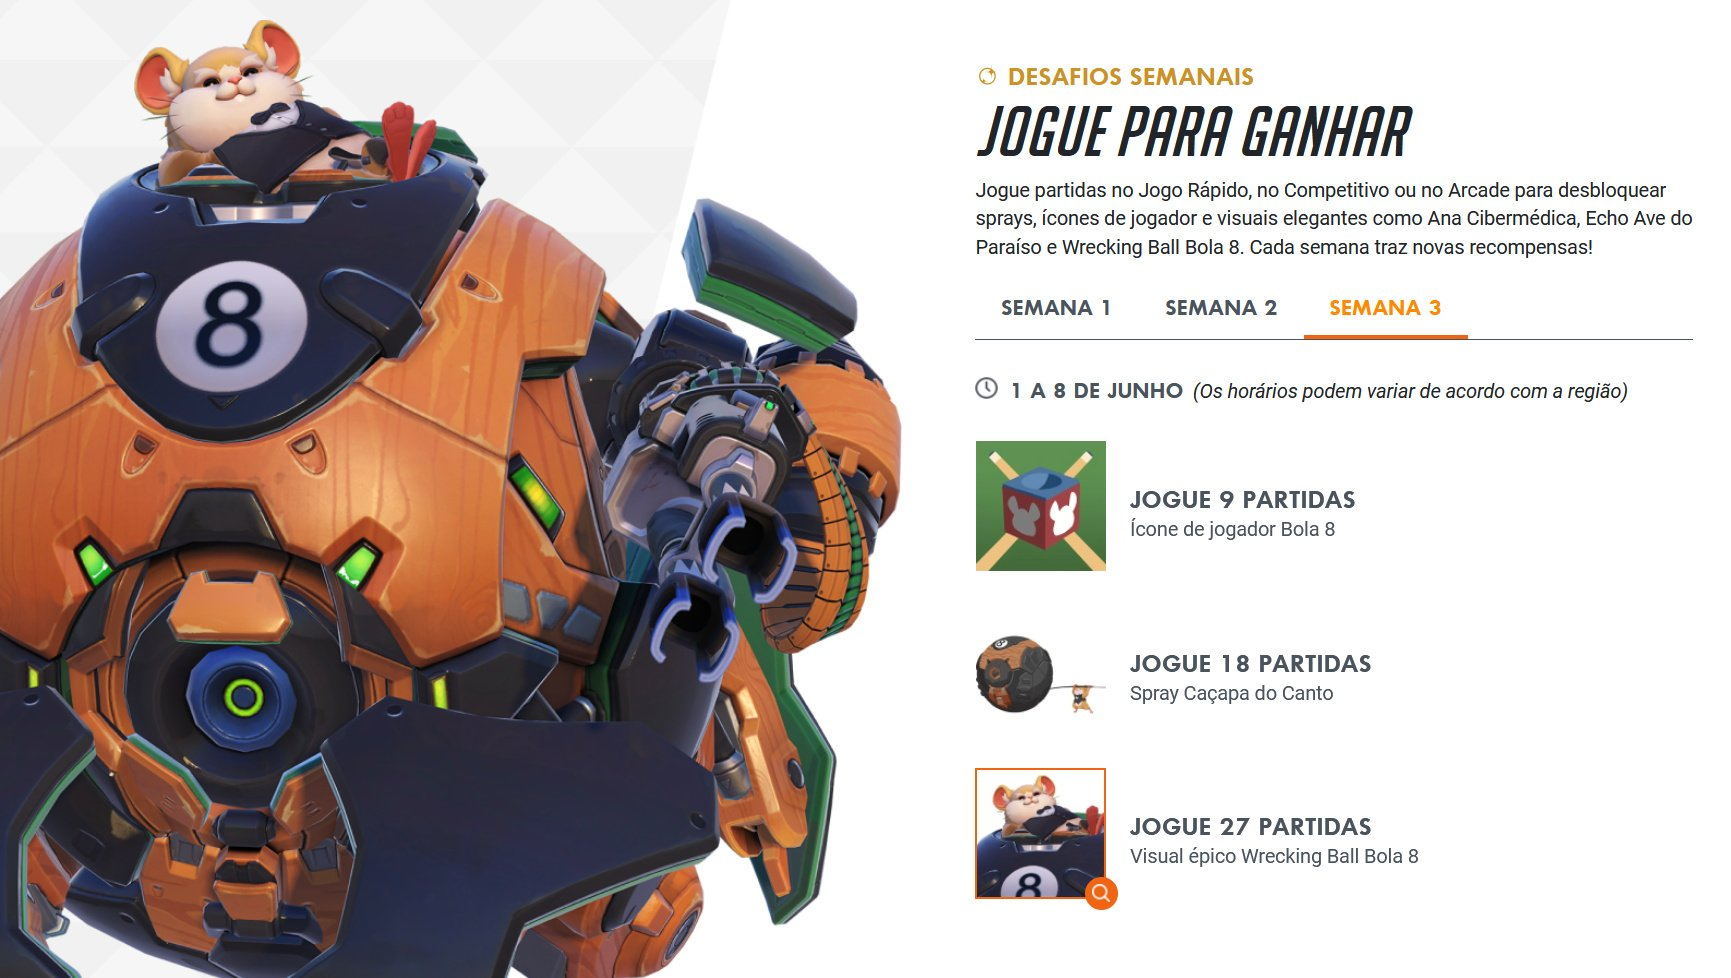 Overwatch - Wrecking Ball Bola 8 - 18-05